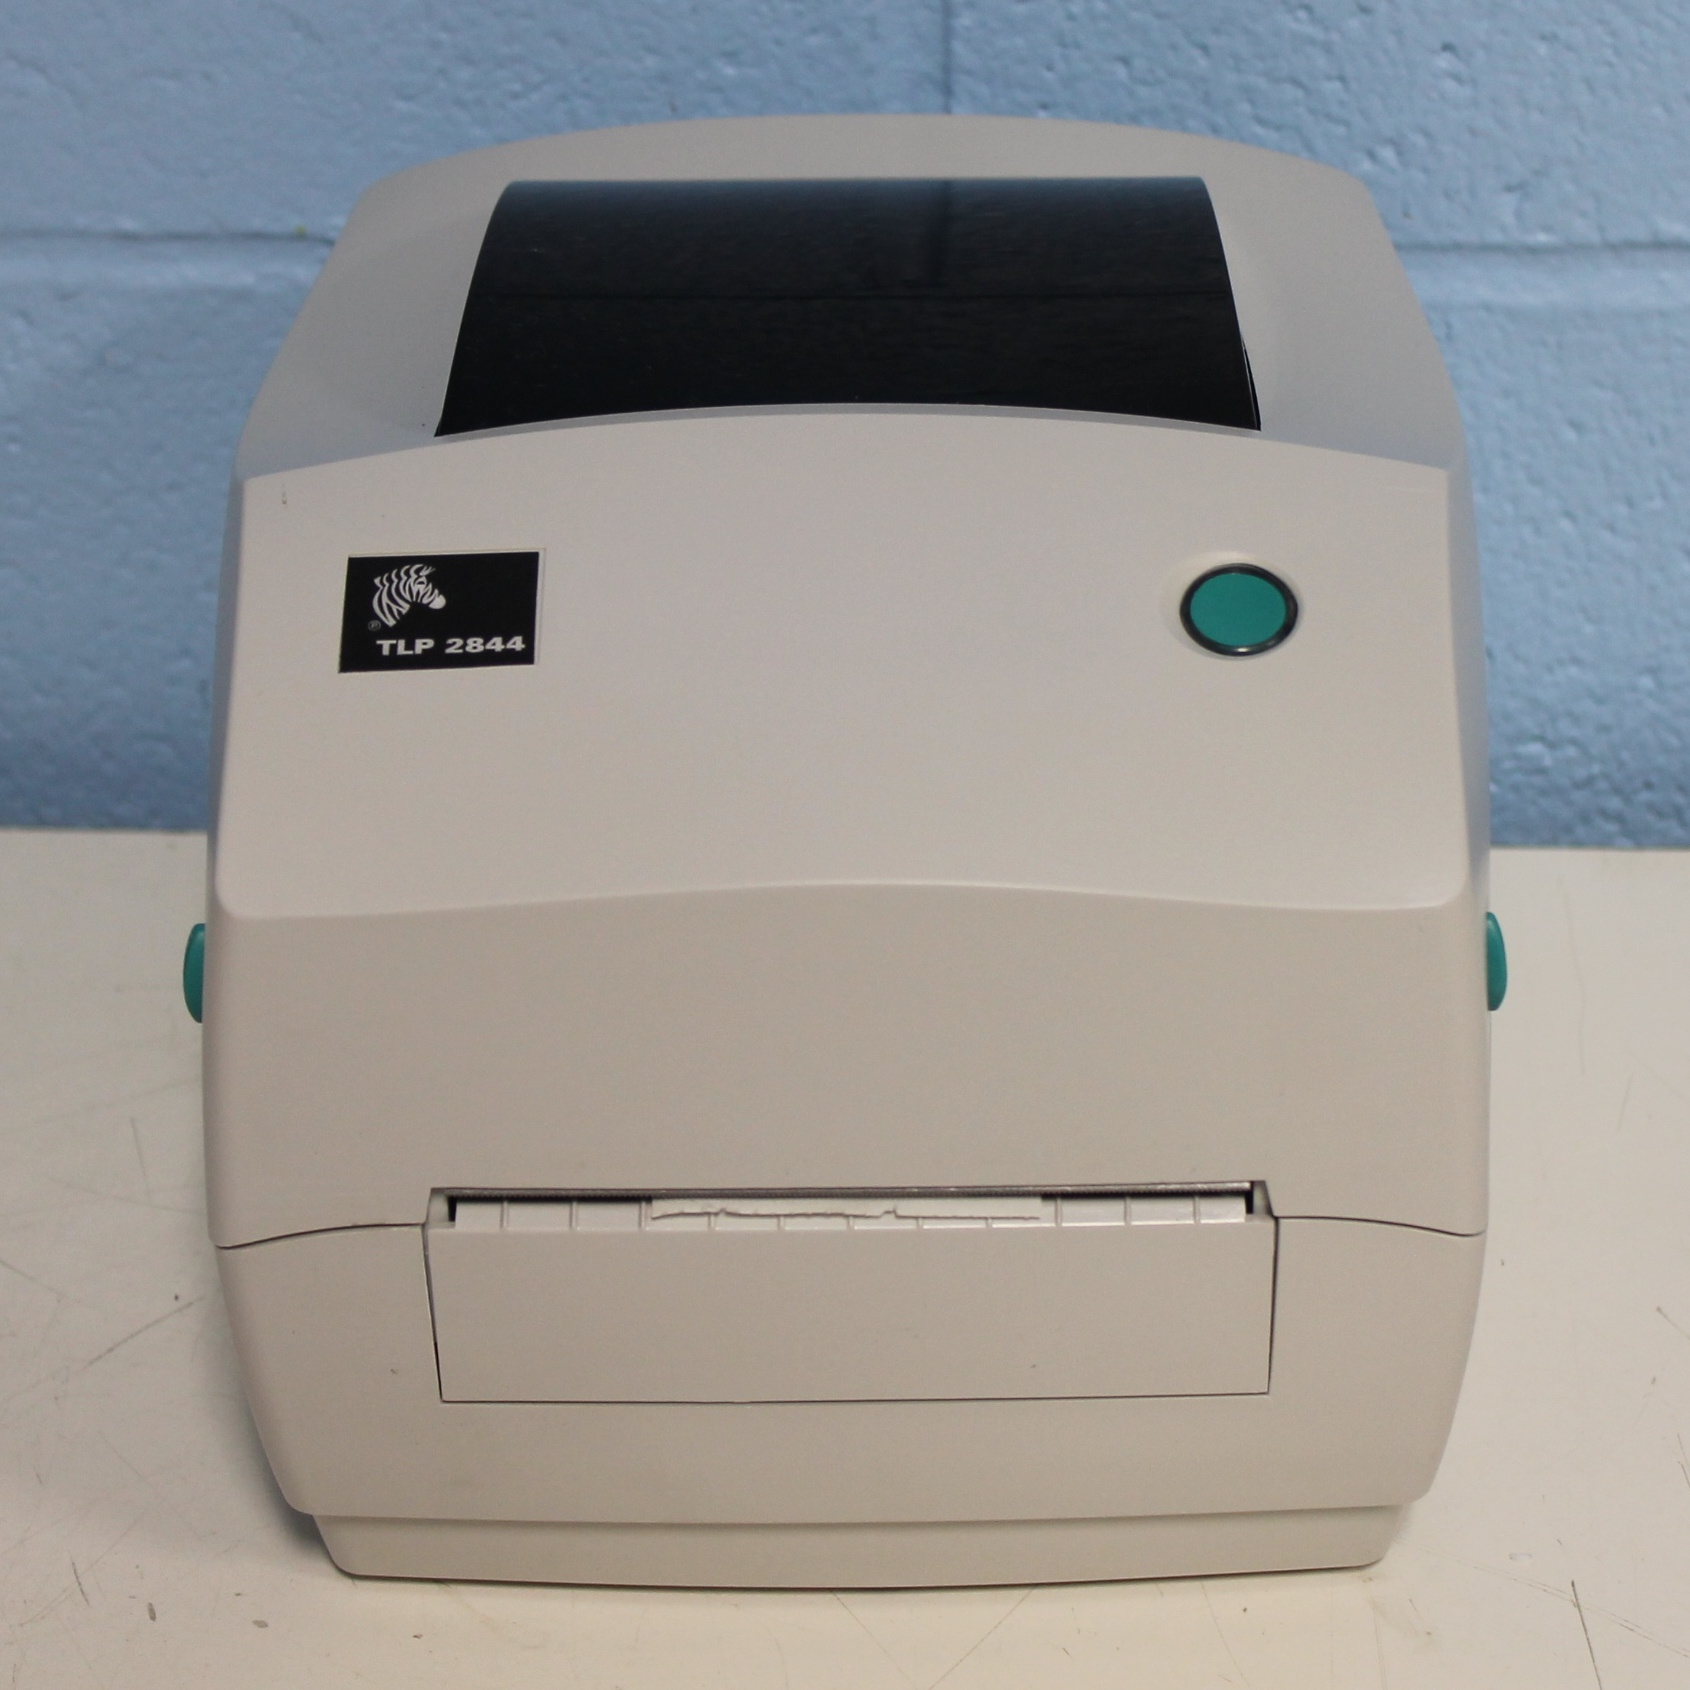 TLP 2844 Label Printer Name